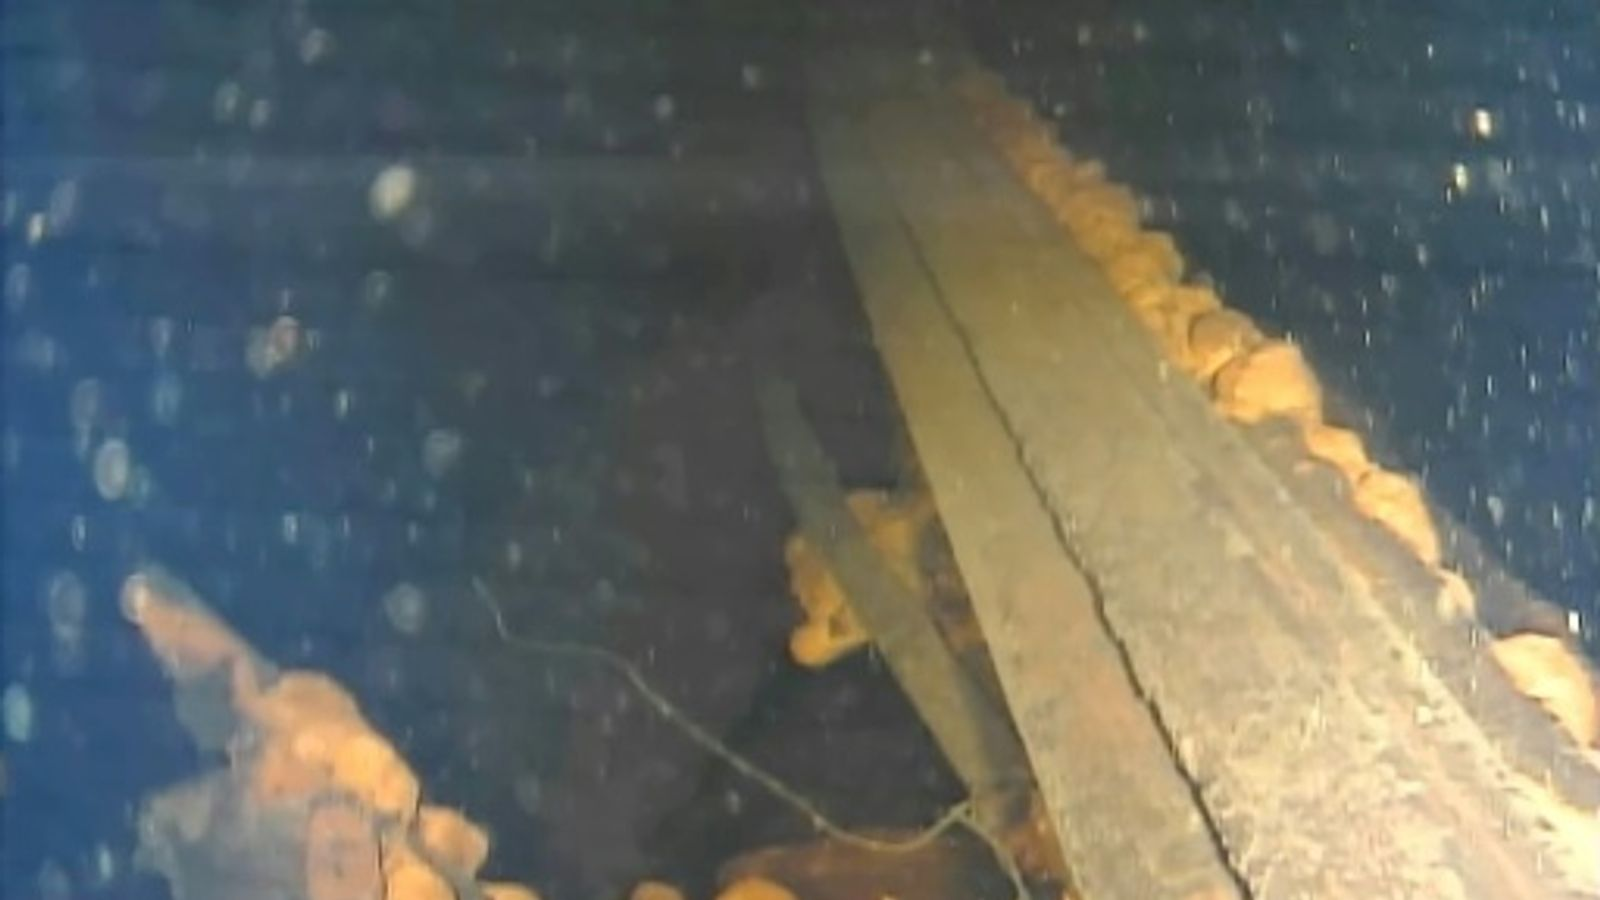 Melted nuclear fuel spotted in Fukushima reactor